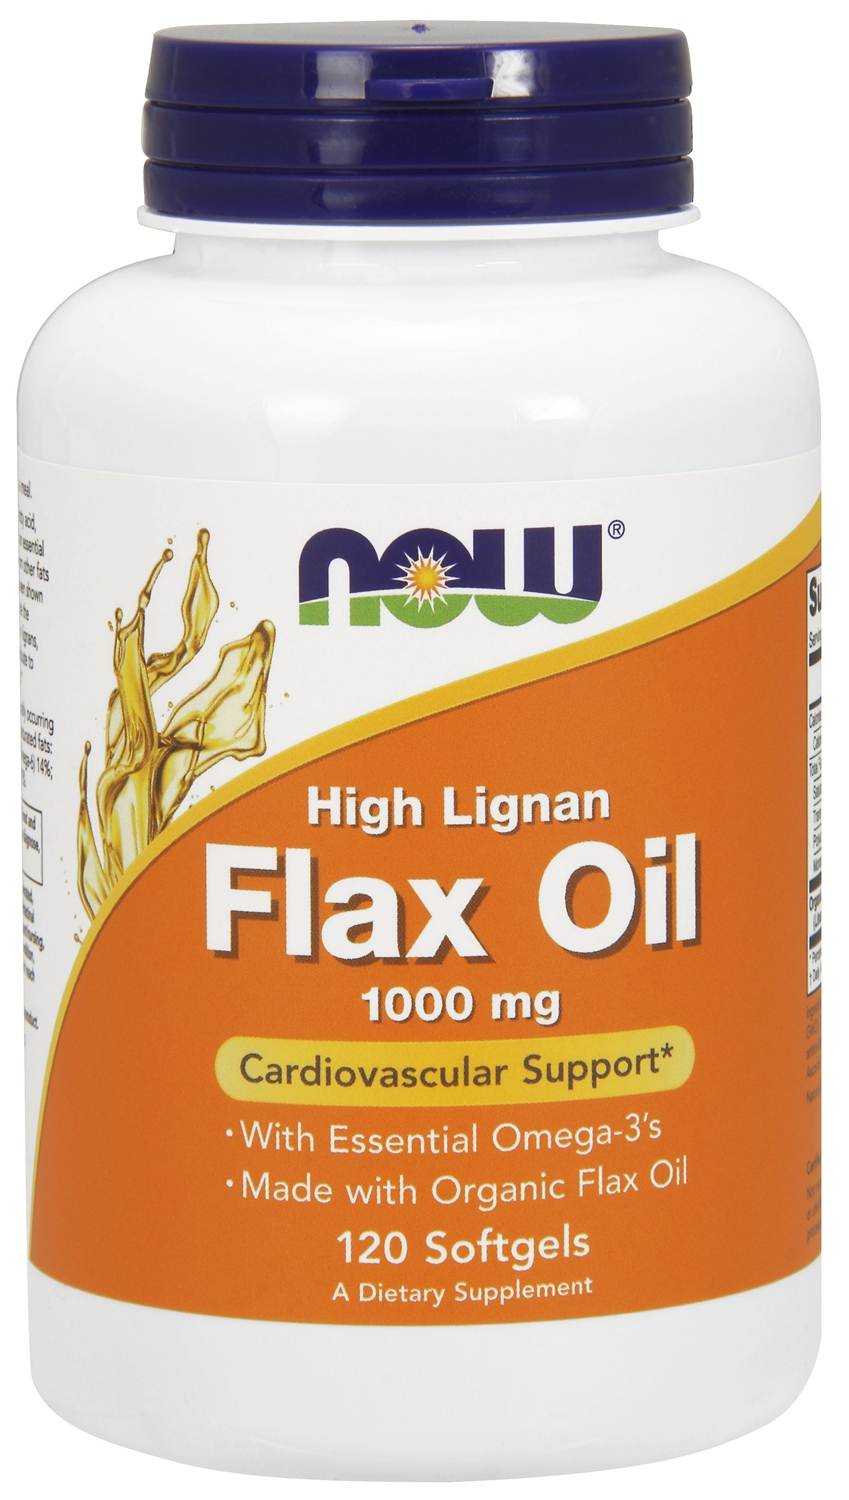 Flax Oil (High Lignan) 1000 mg 120 sgels by NOW